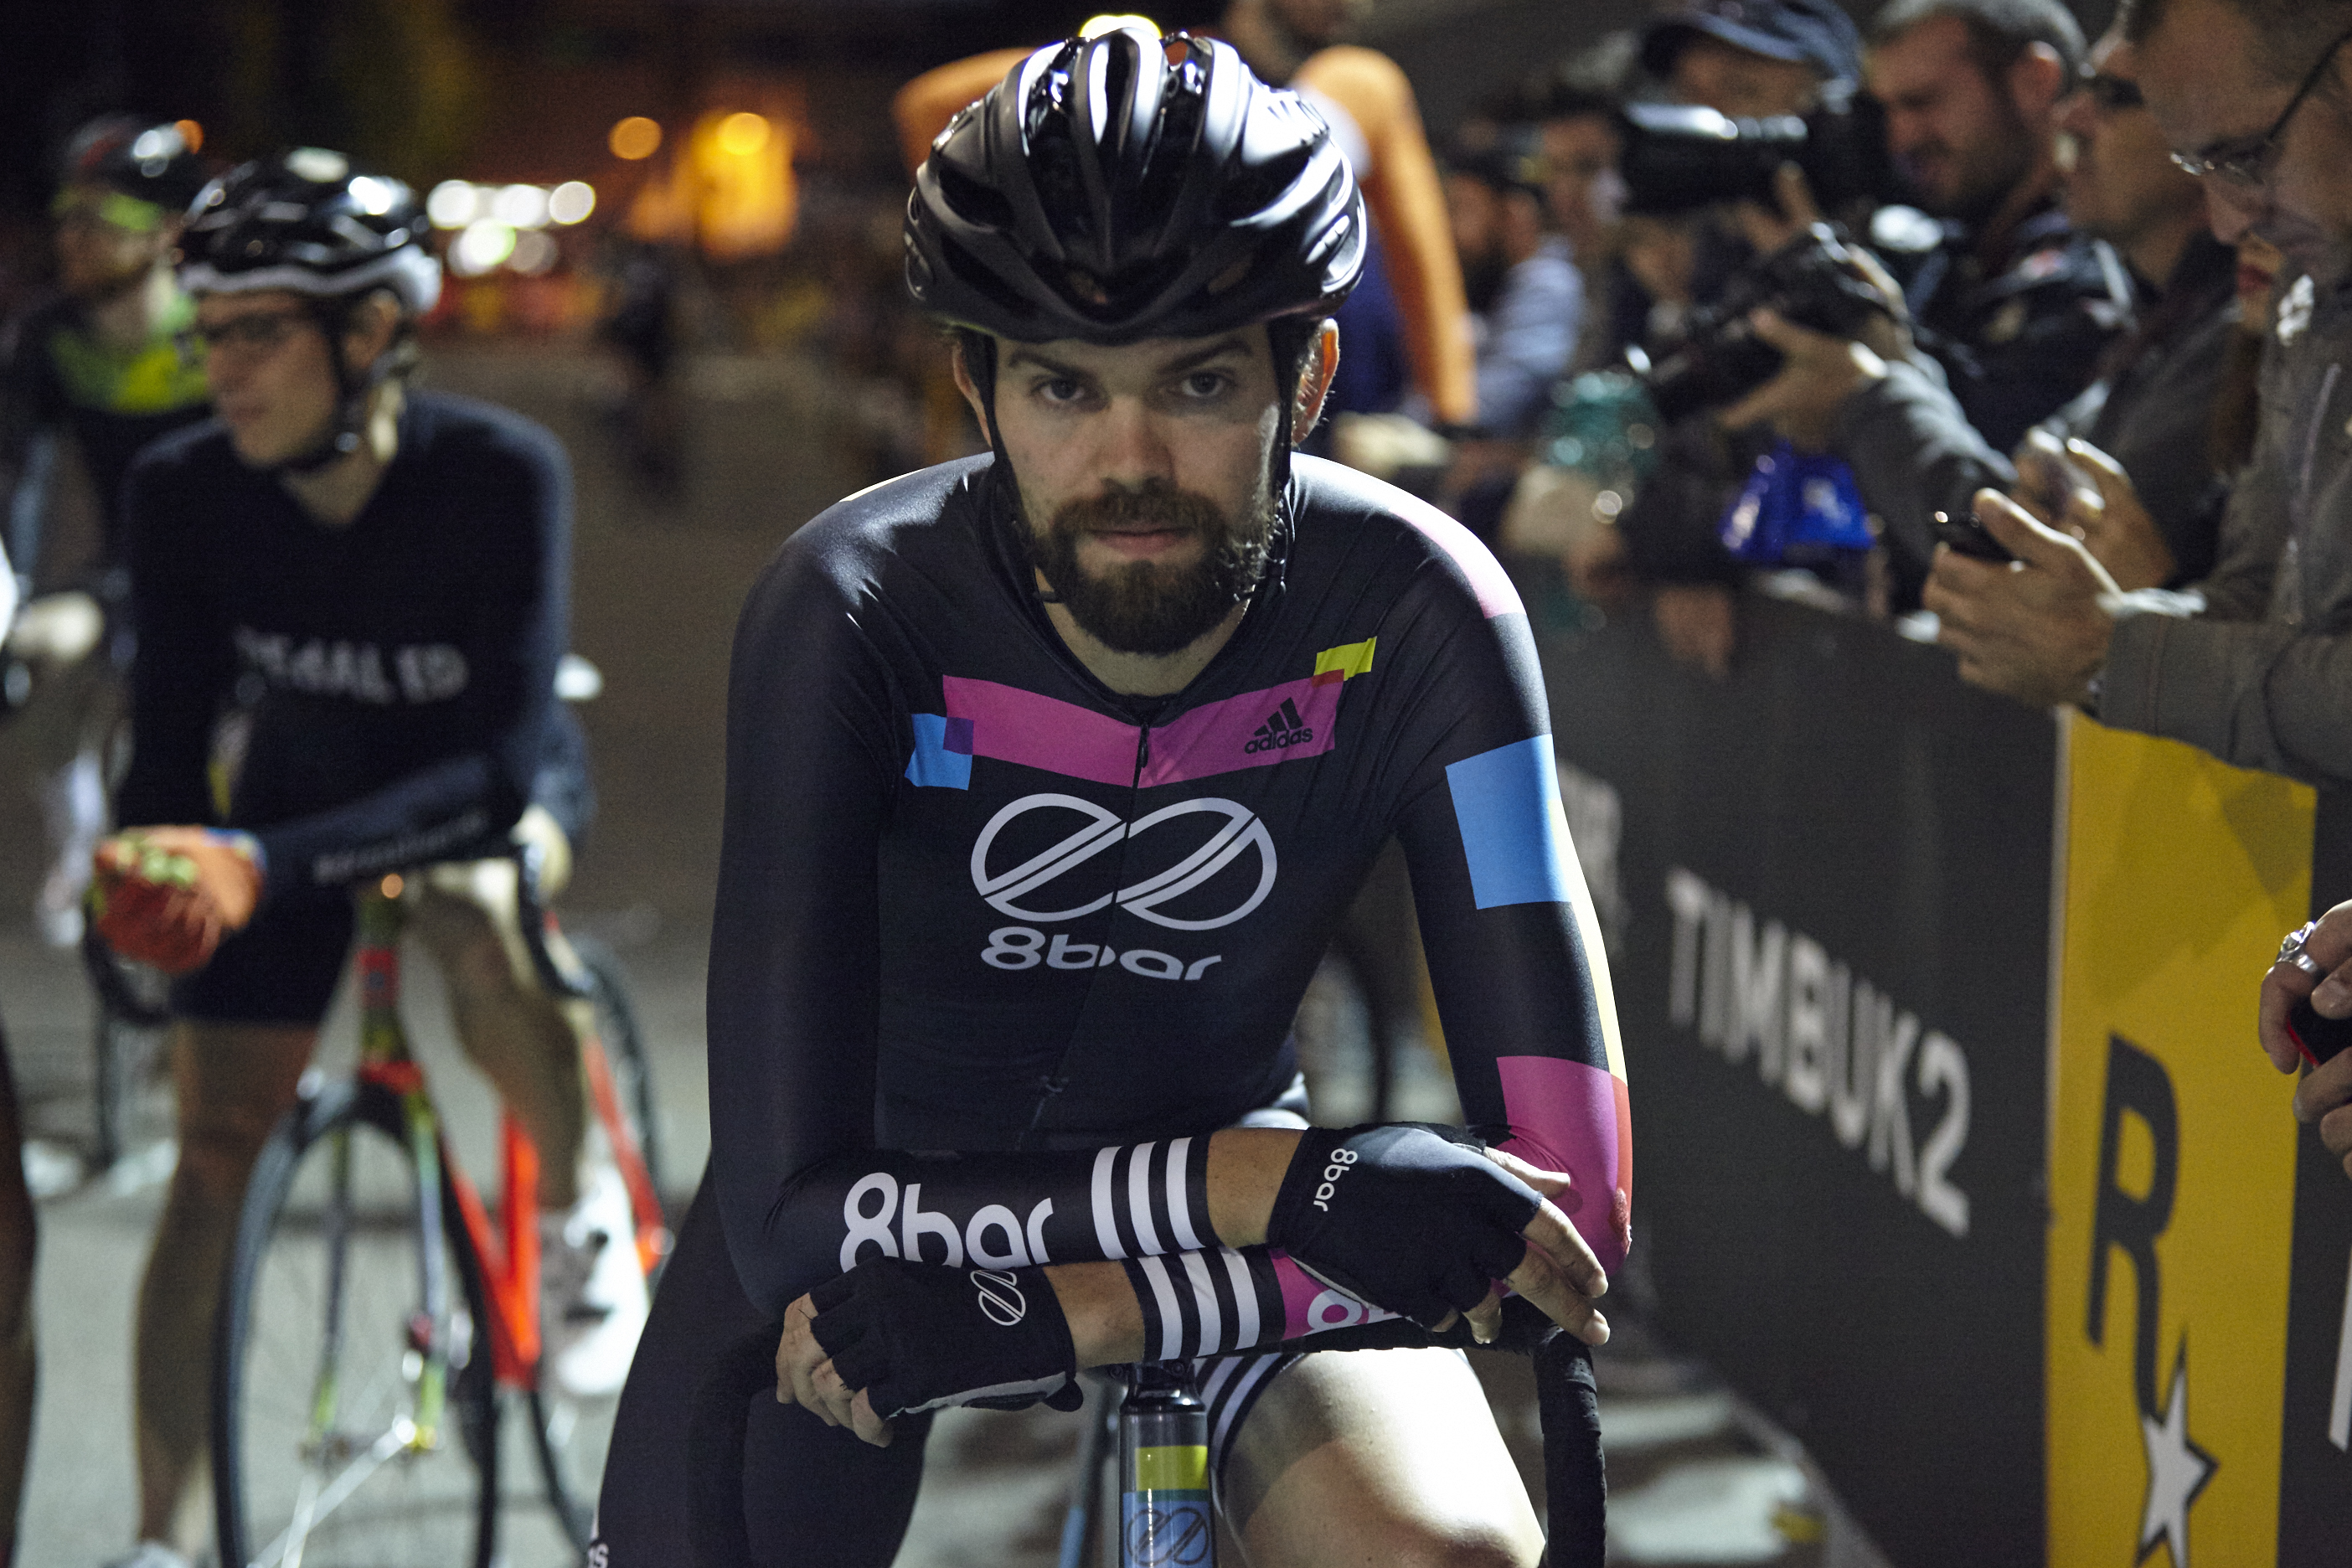 8bar team red hook crit milan 8685 - 8bar at Red Hook Criterium Milan 2015